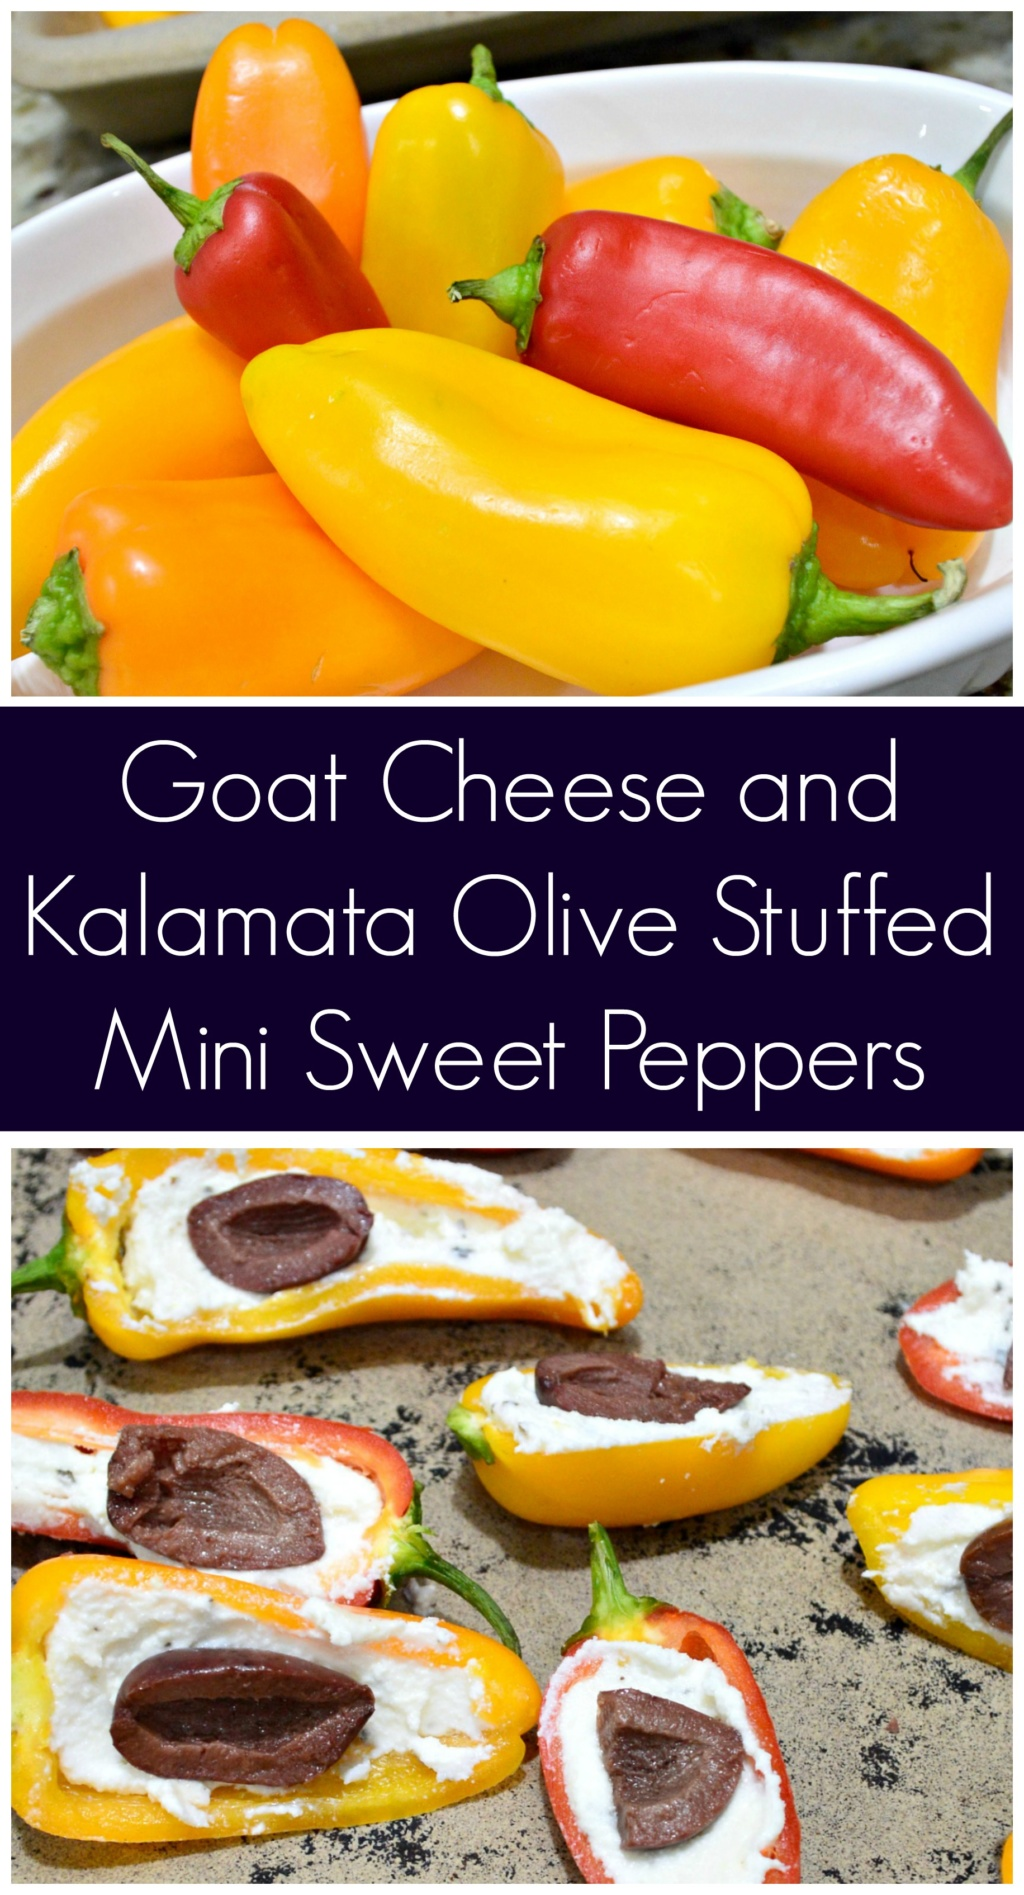 Goat Cheese and Kalamata Olive Stuffed Mini Sweet Peppers